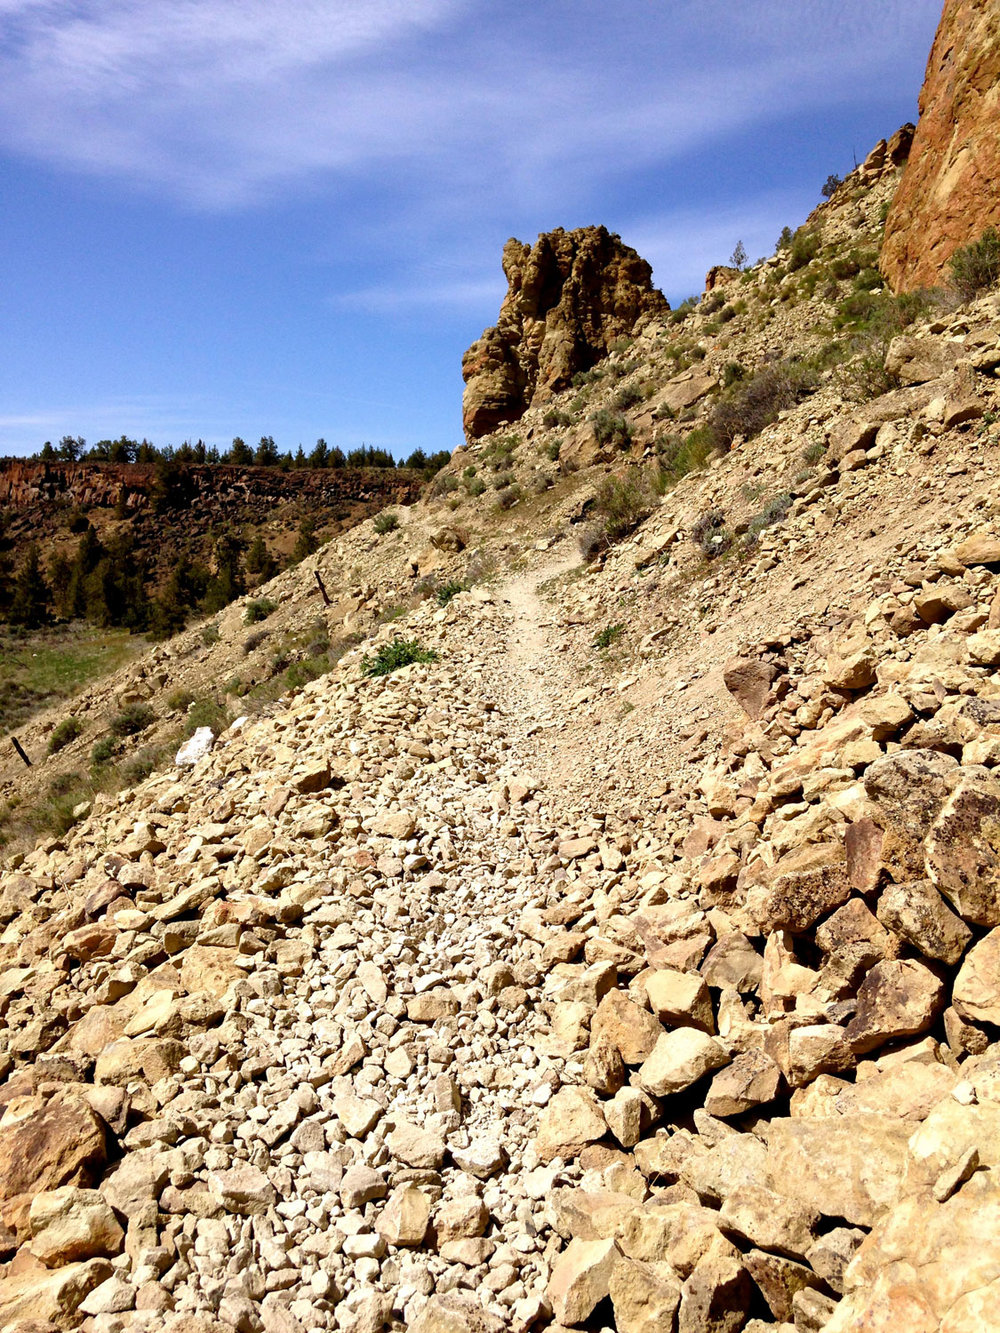 The Summit Trail has some scree sections you need to pay attention to at Smith Rock State Park.